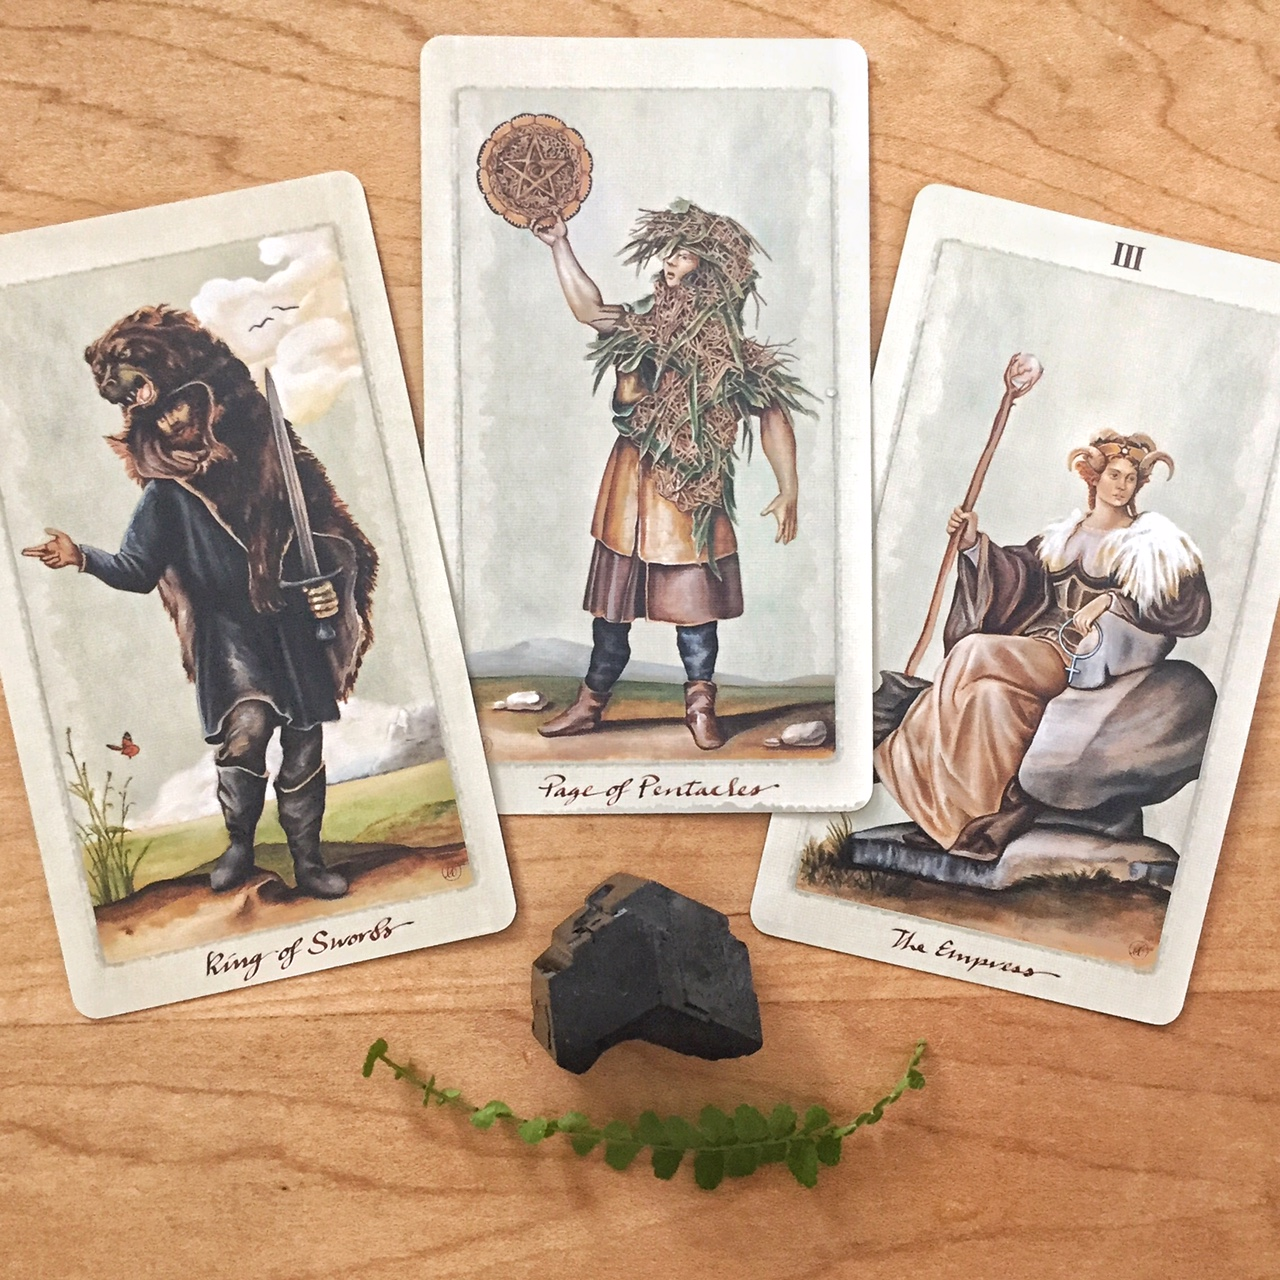 Cards from the Pagan Otherworlds Tarot